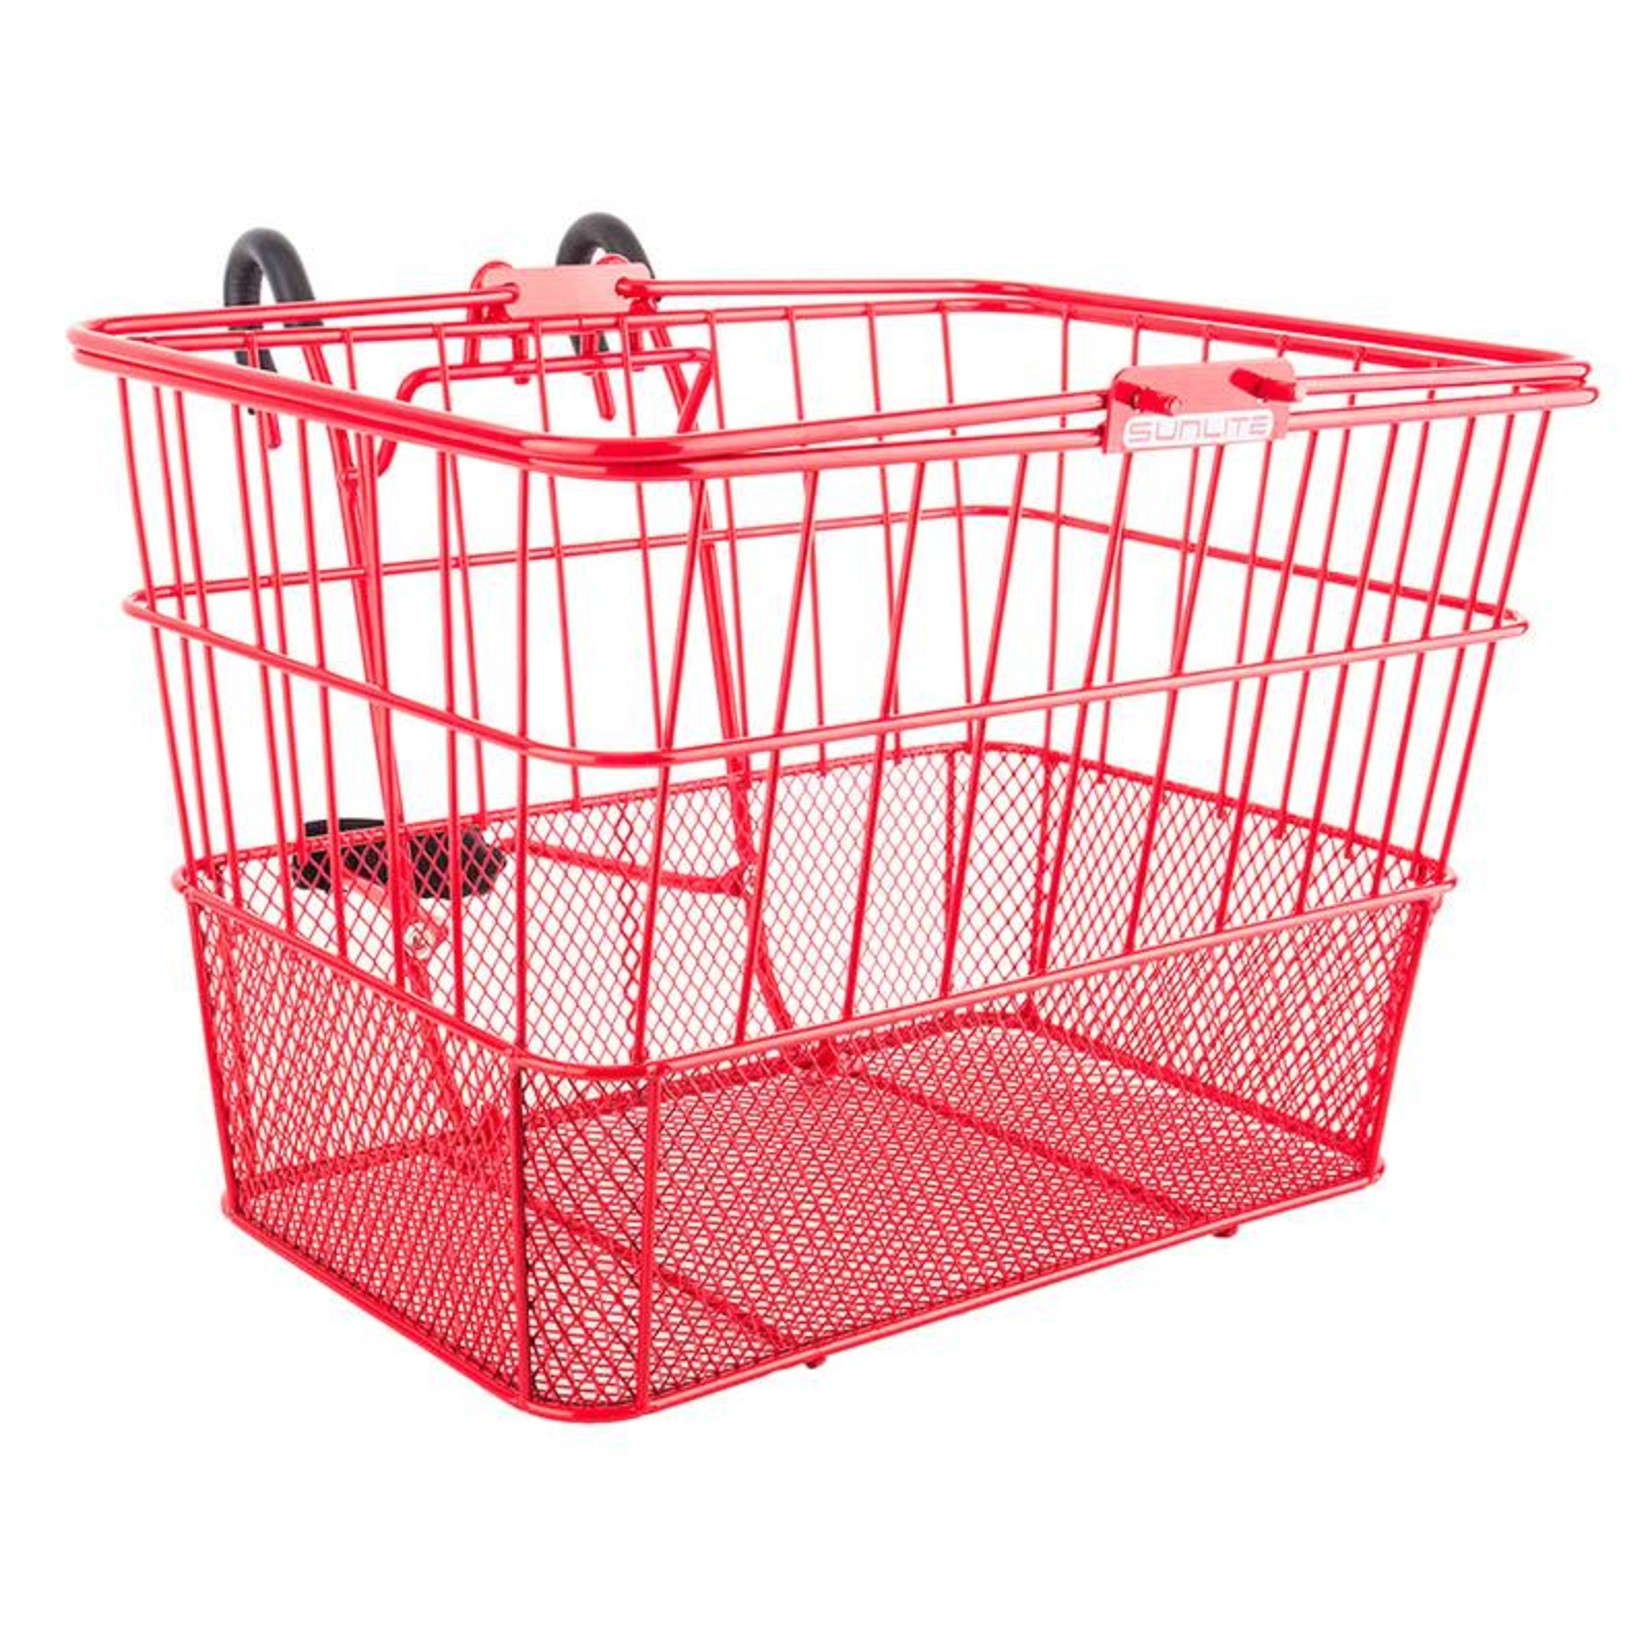 Lift-Off Mesh bottom basket